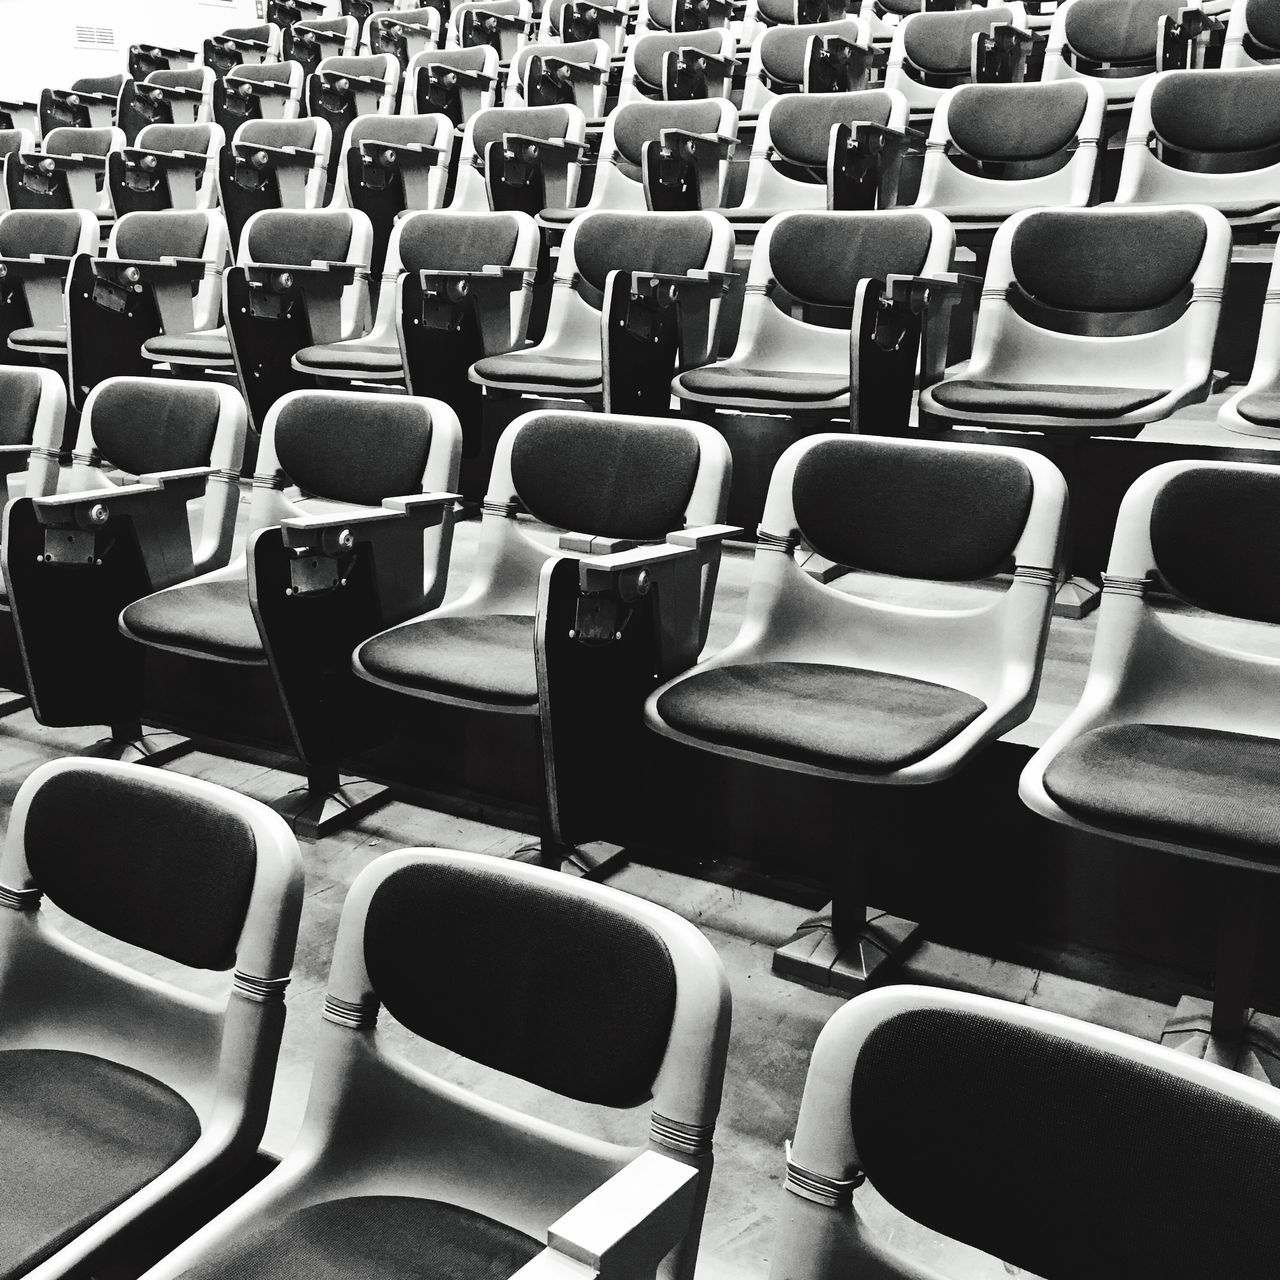 in a row, chair, empty, seat, absence, repetition, arts culture and entertainment, auditorium, indoors, audience, arrangement, folding chair, stadium, day, people